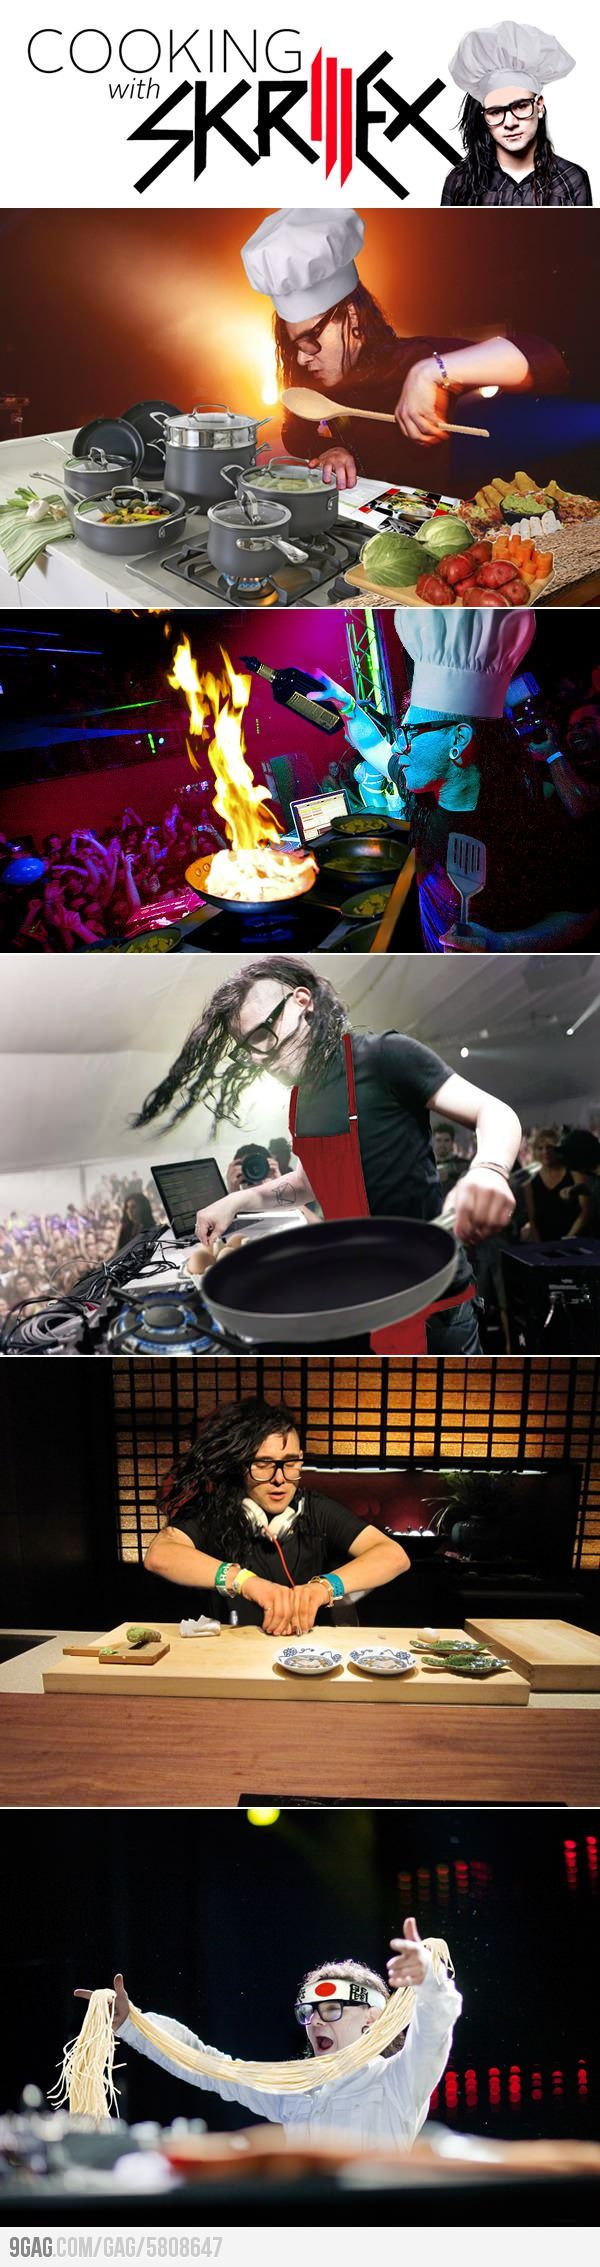 Cooking with Skrillex. #dubstep #skrillex